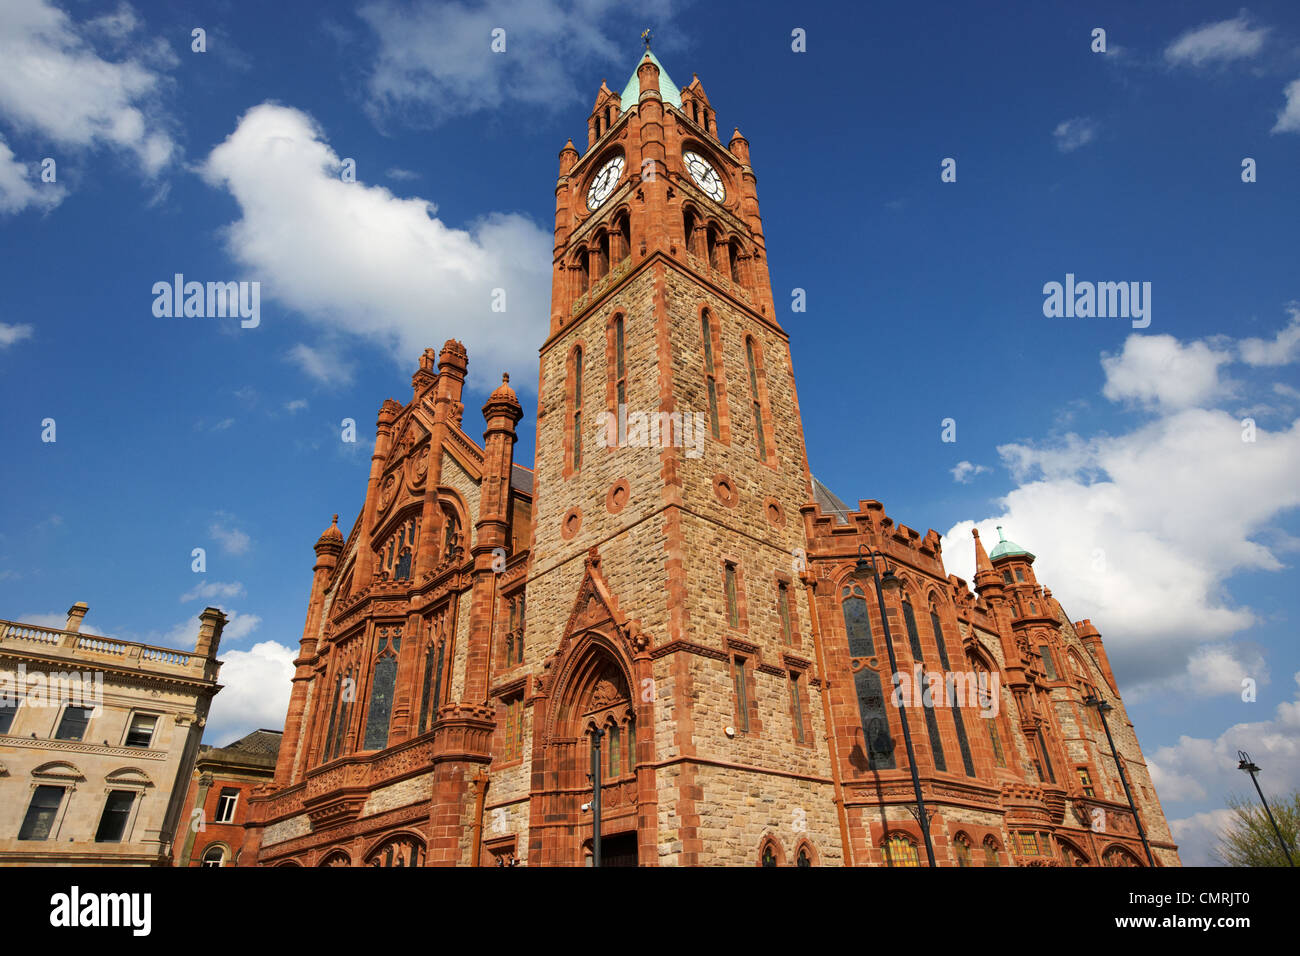 The Guildhall Derry city county londonderry northern ireland uk. - Stock Image